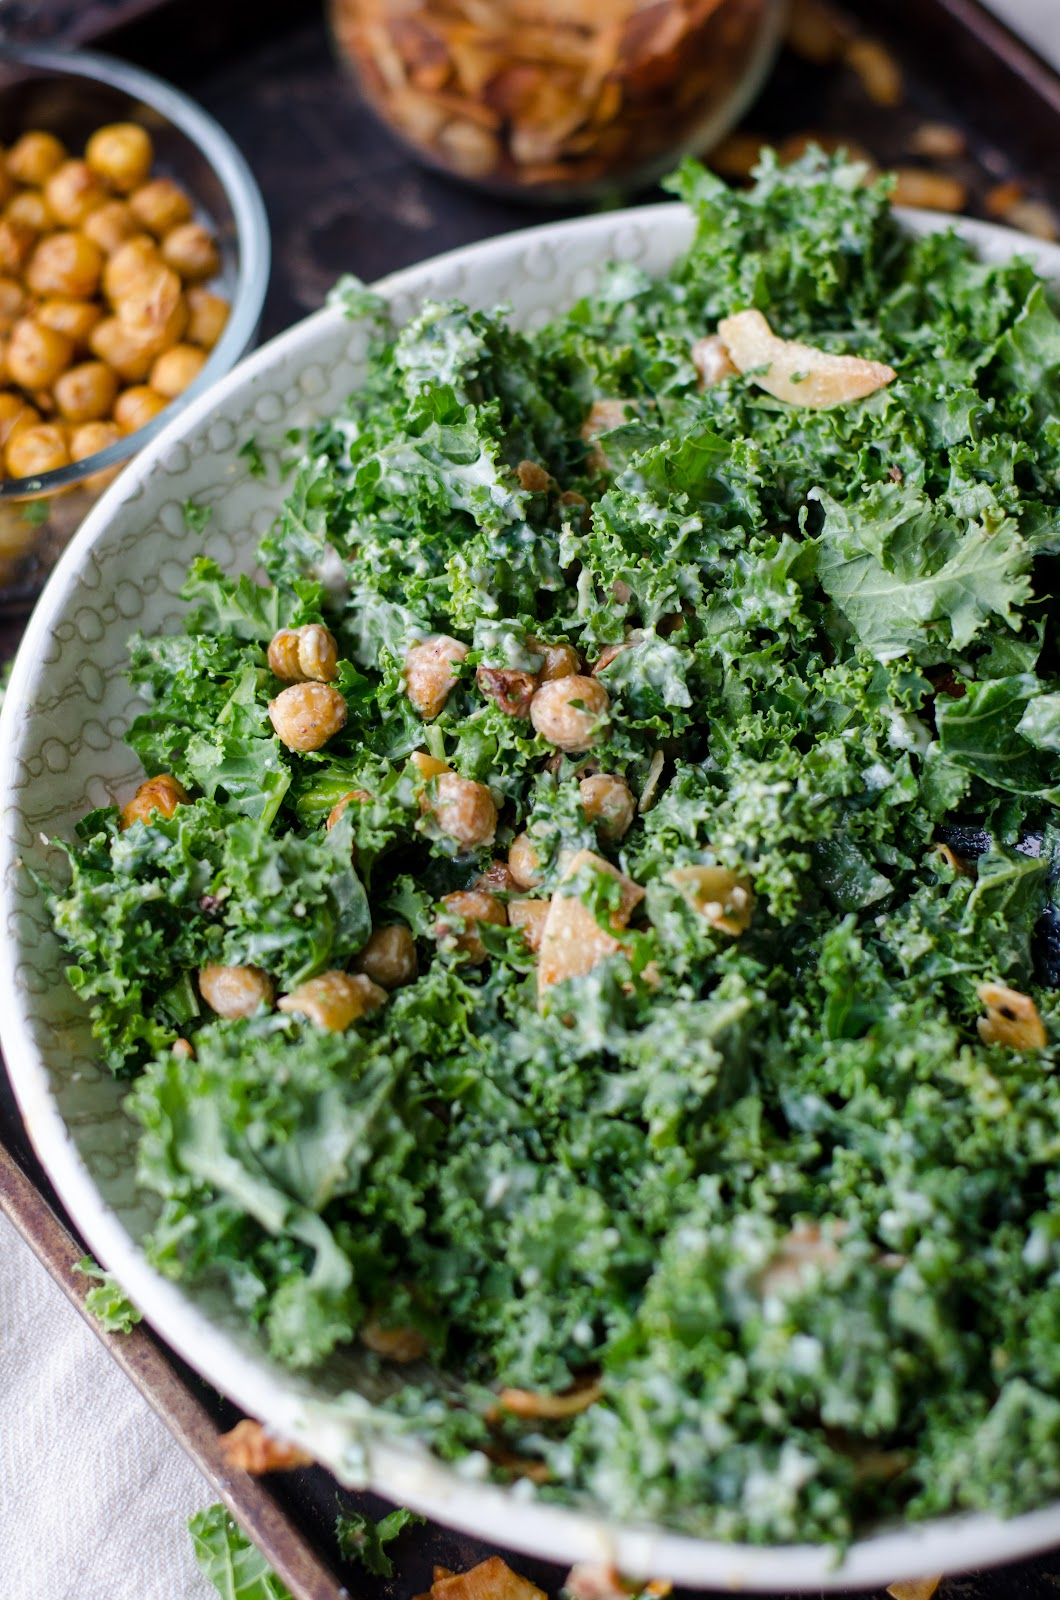 A salad packed with nutrients will keep you full for longer. This kale salad with chickpeas offers protein and fiber.